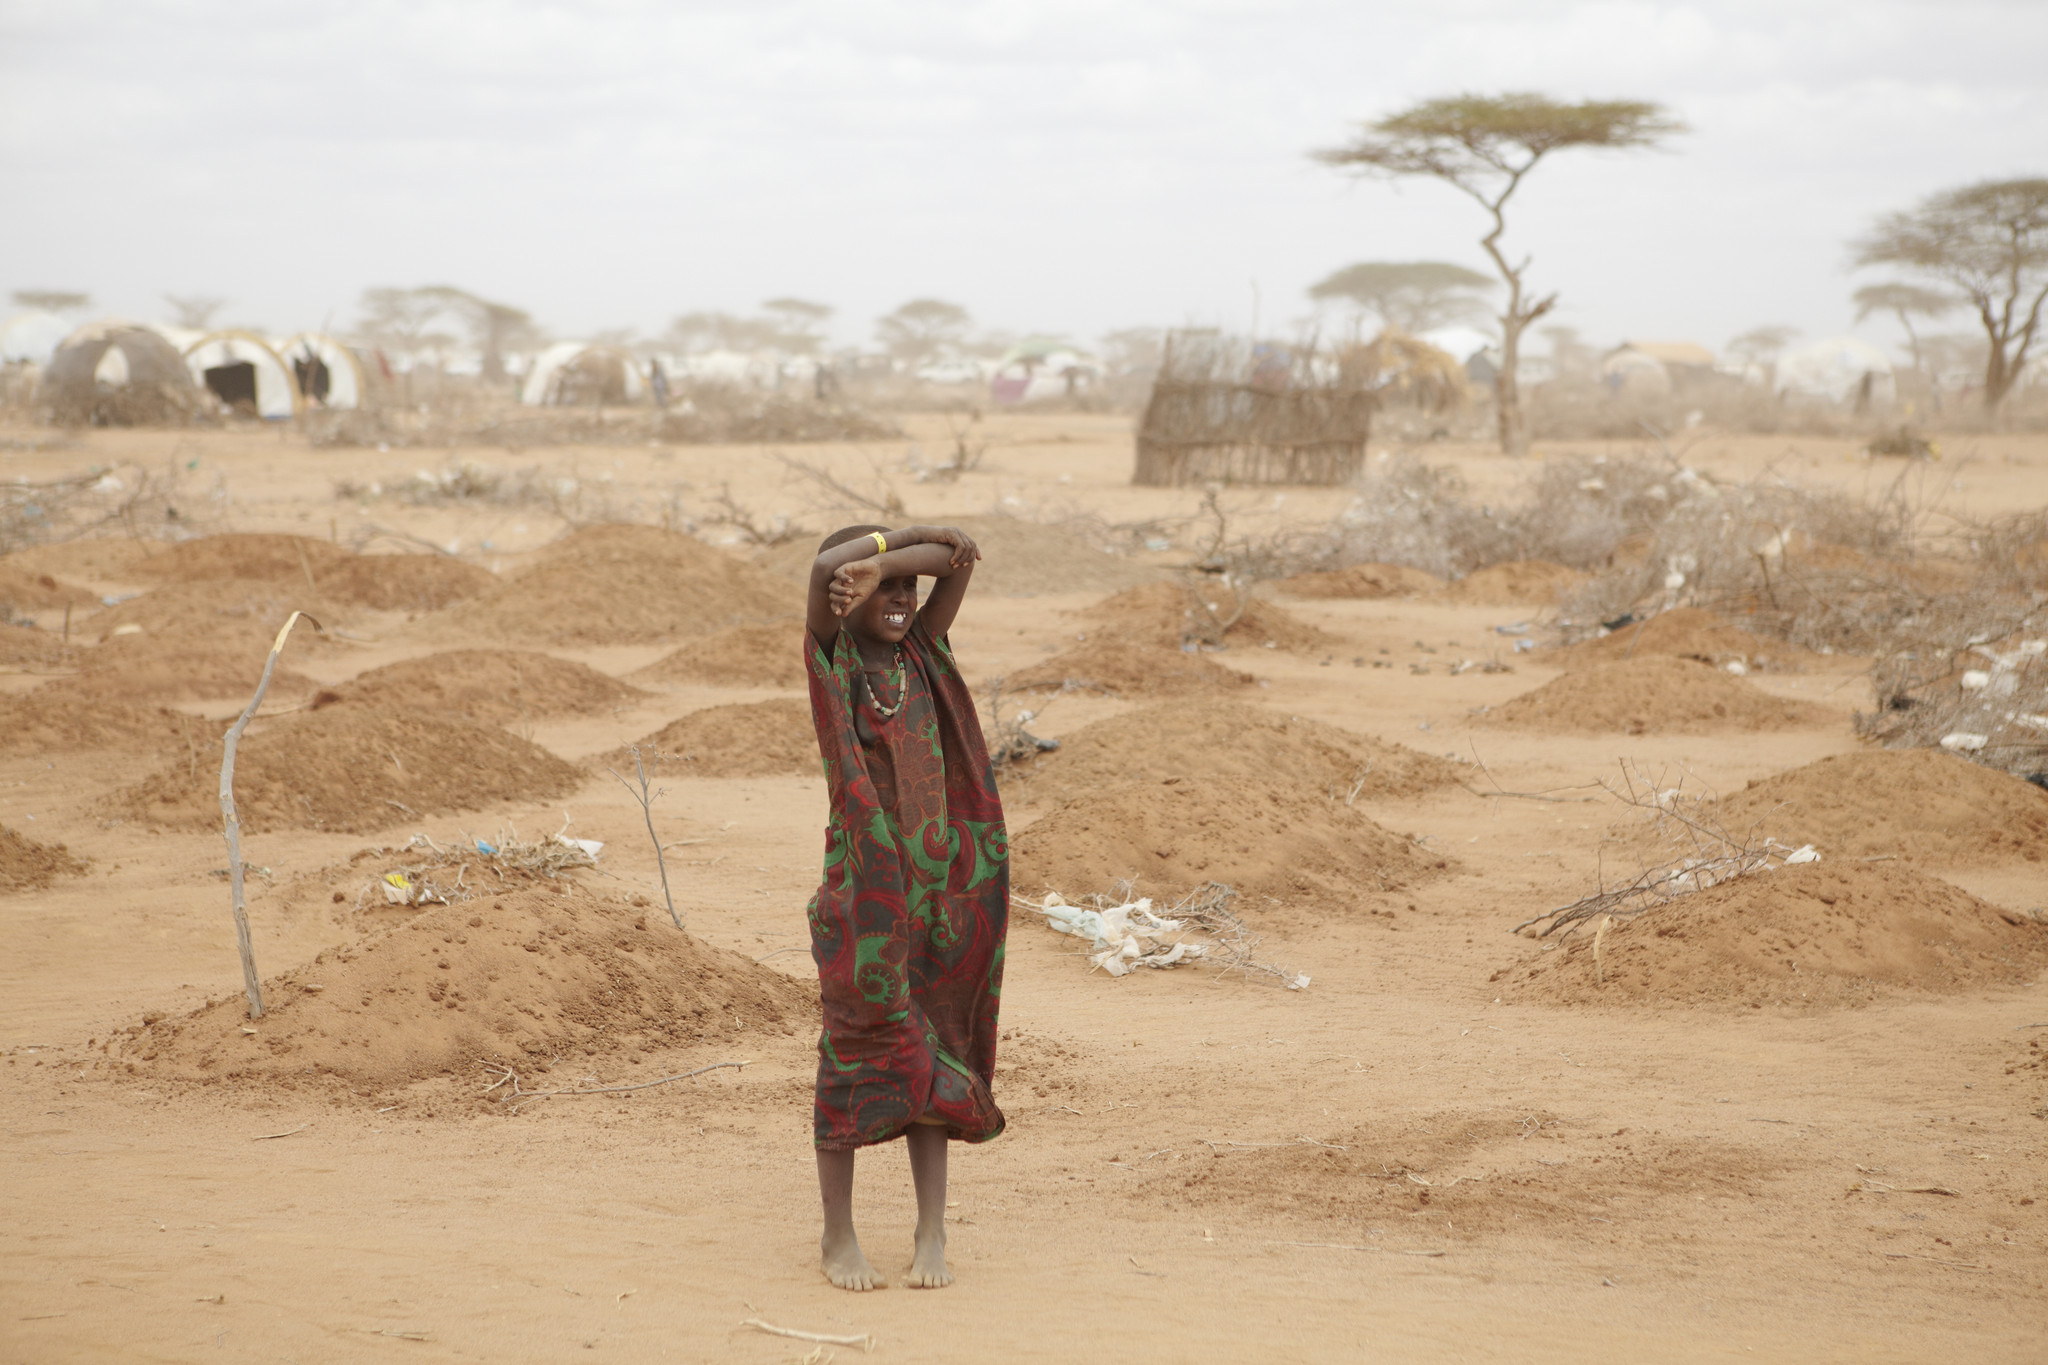 A young girl stands amid the freshly made graves of 70 children, many of whom died of malnutrition, outside Dadaab refugee camp. Photo: Andy Hall/Oxfam.